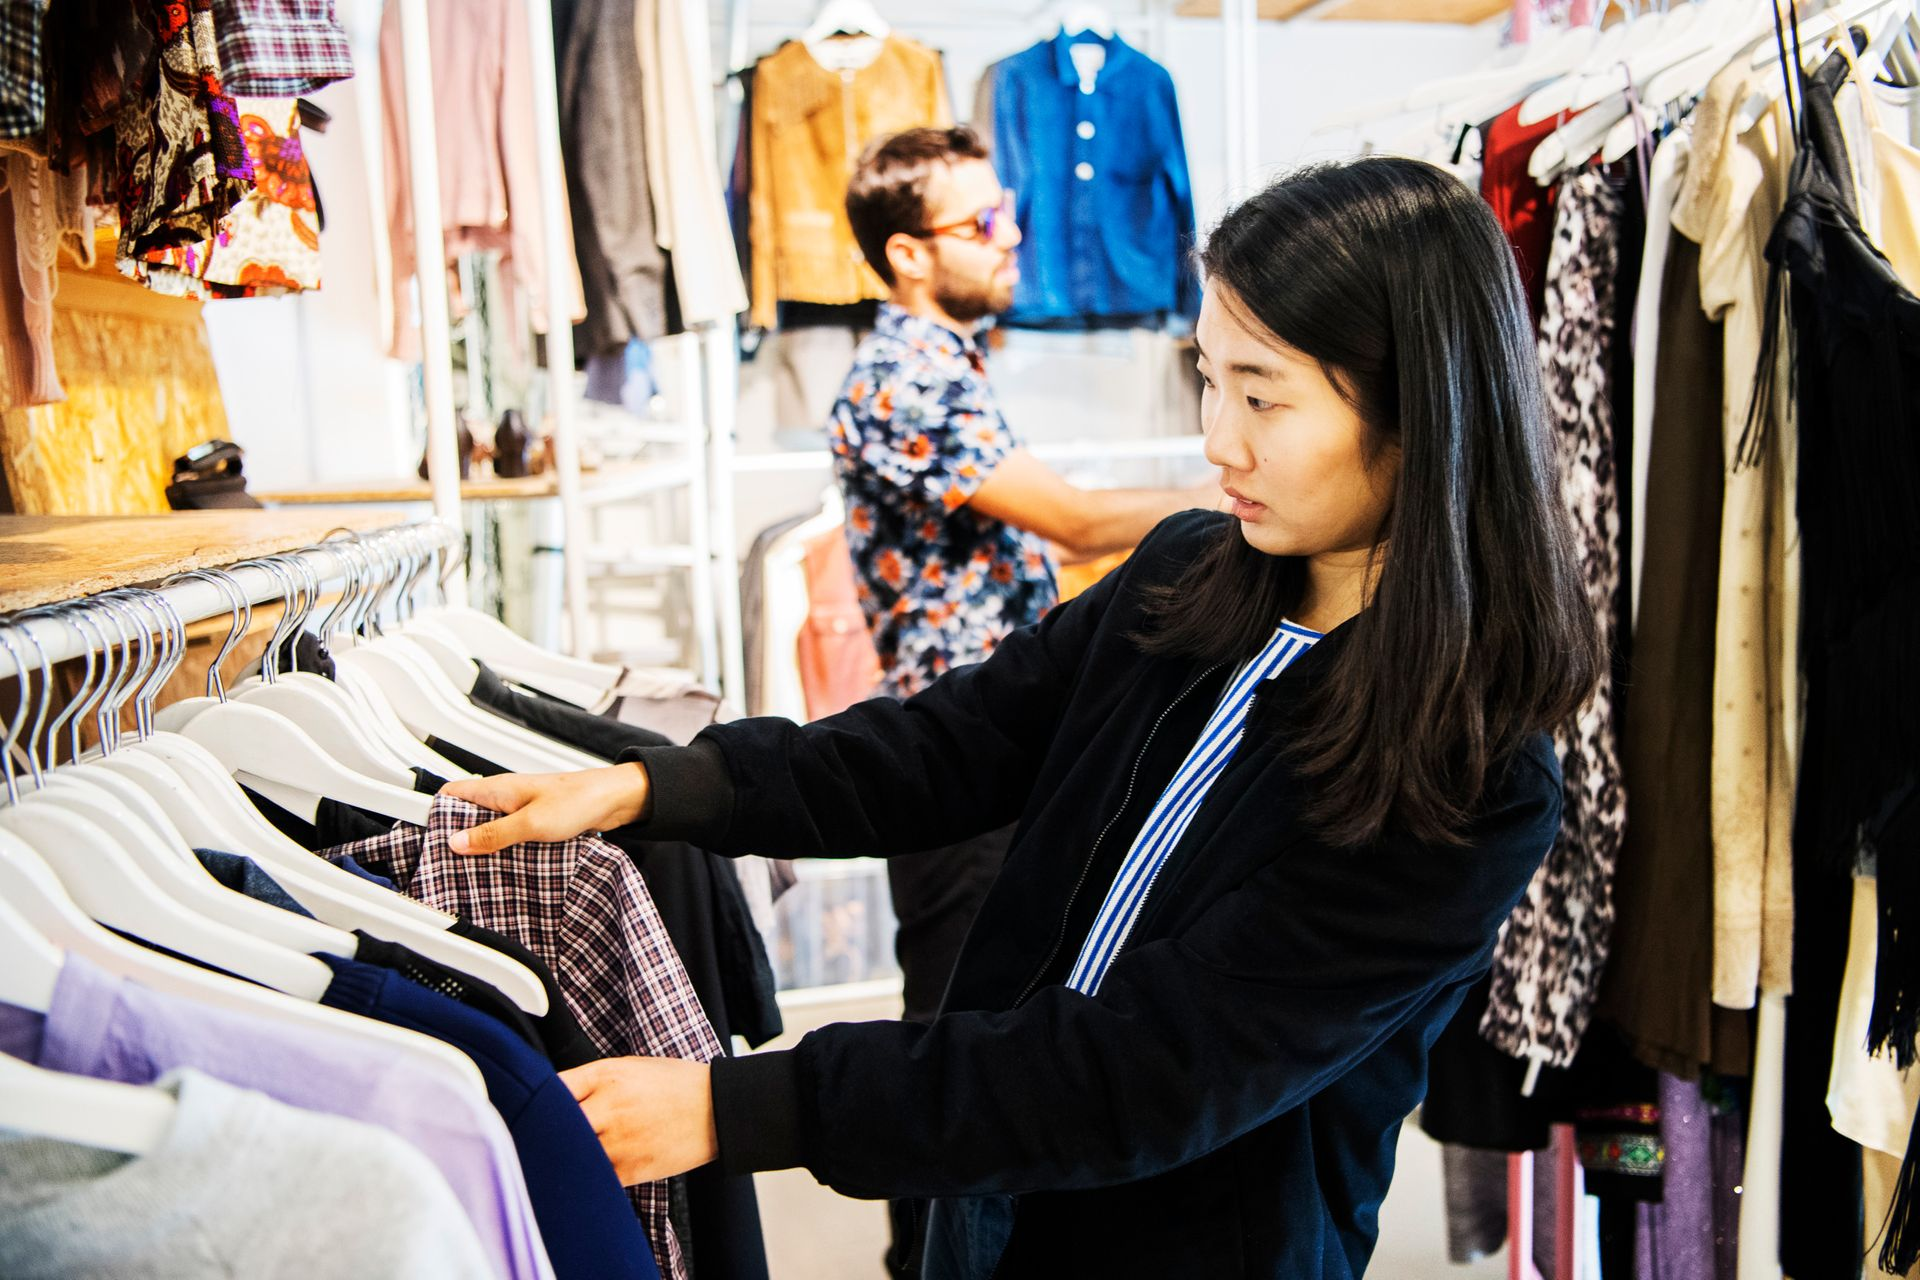 A woman browsing clothes in a vintage shop.